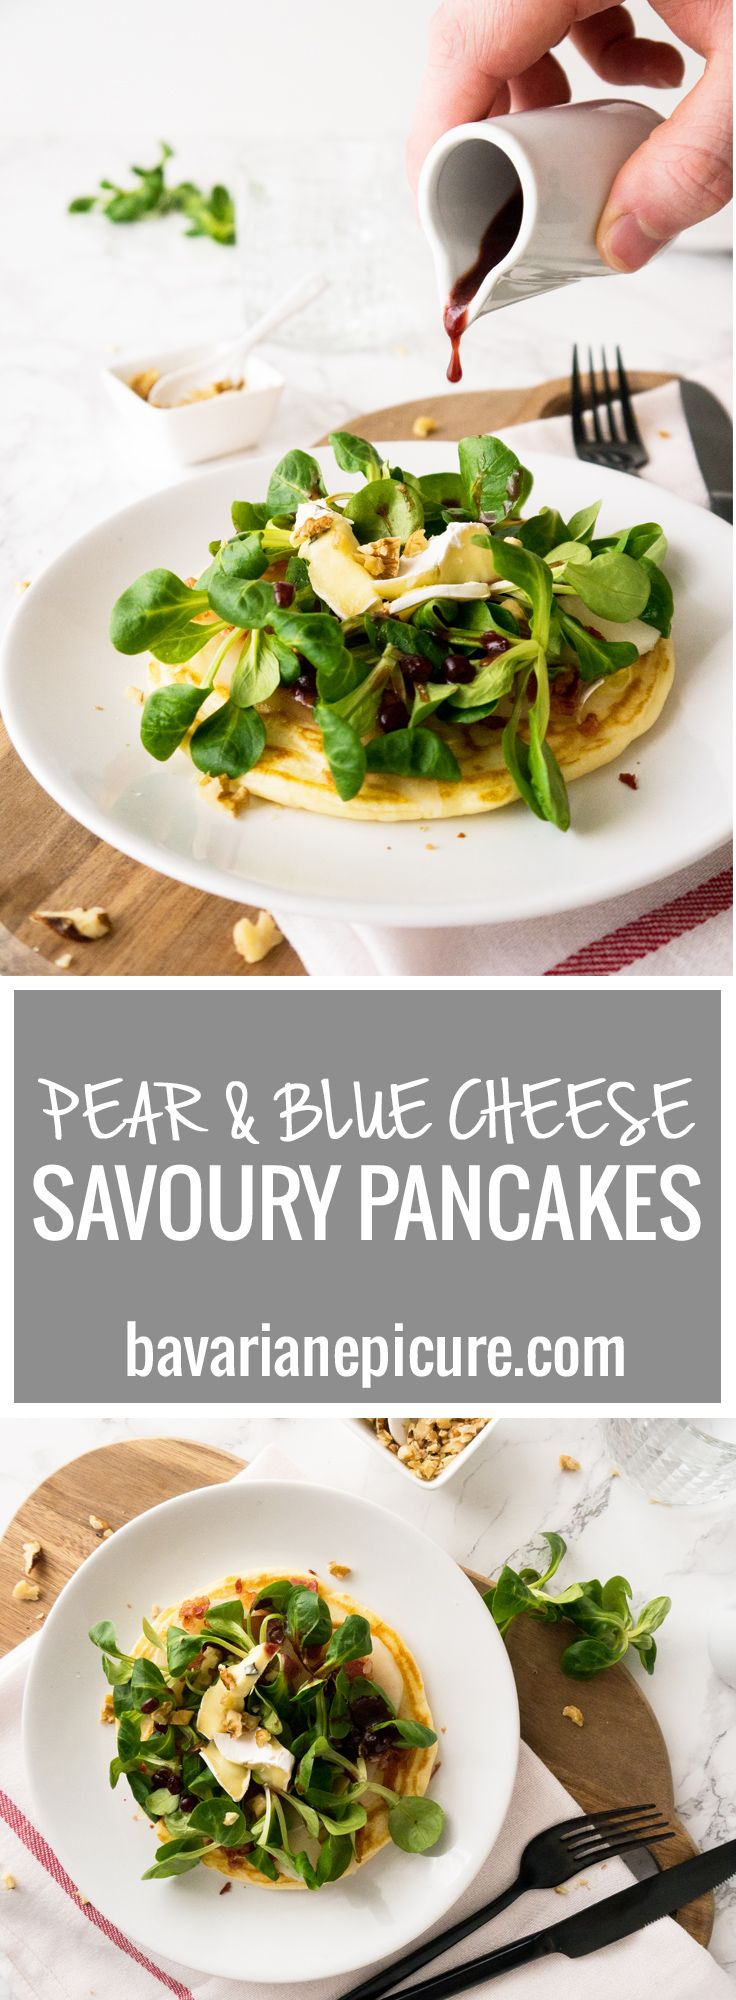 You have to try these savoury Pear and Blue Cheese Pancakes! Perfect for brunch, as a main dish or as a course in a full course dinner.